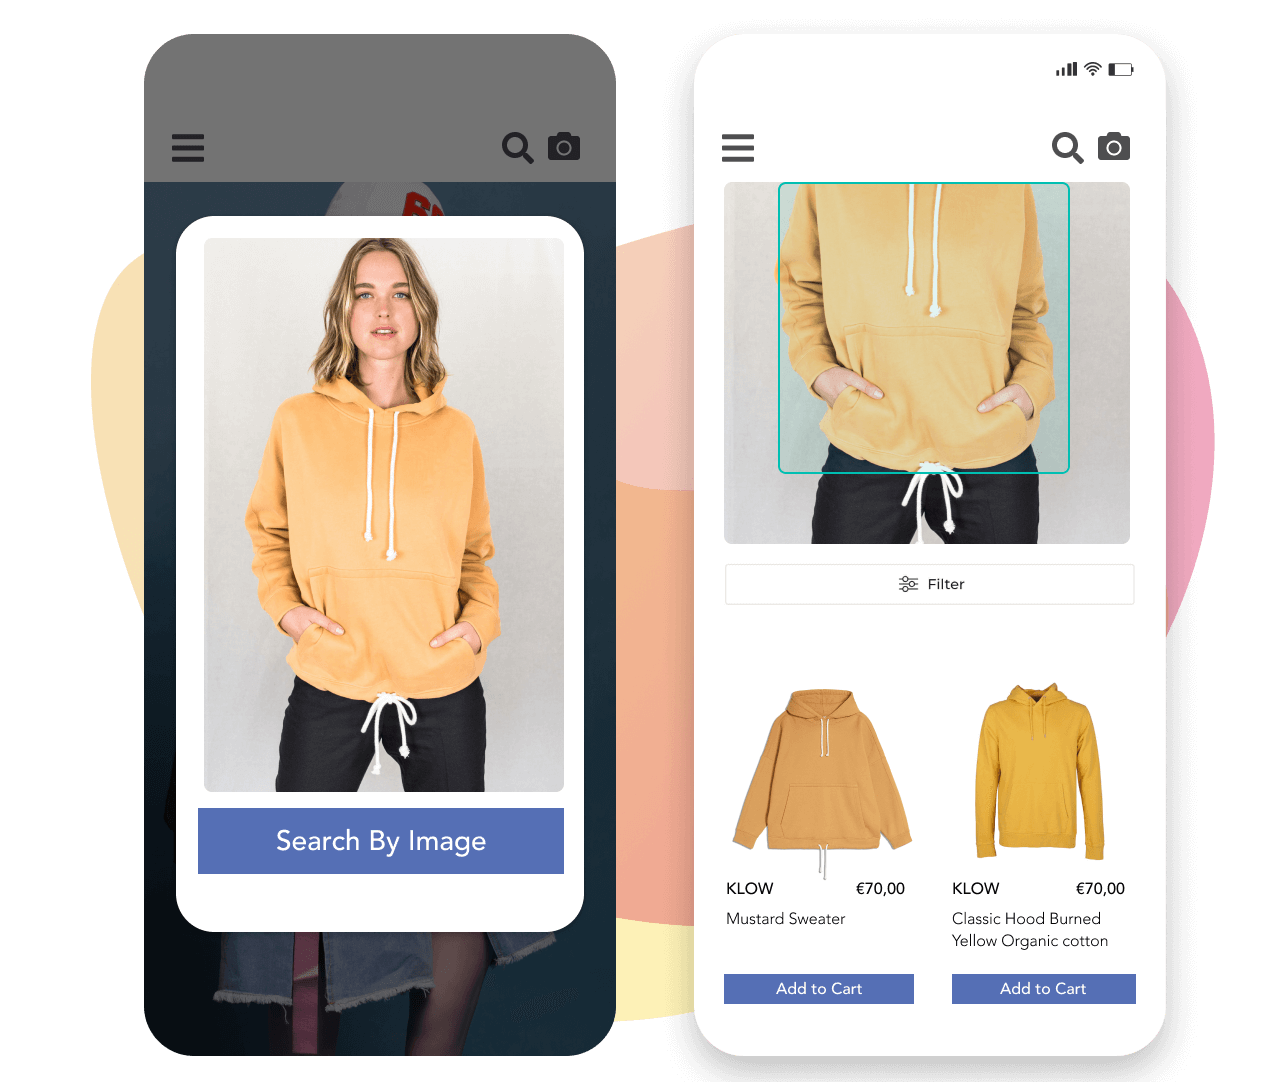 Process of visual search in three steps: image upload, image analysis, visually similar items.